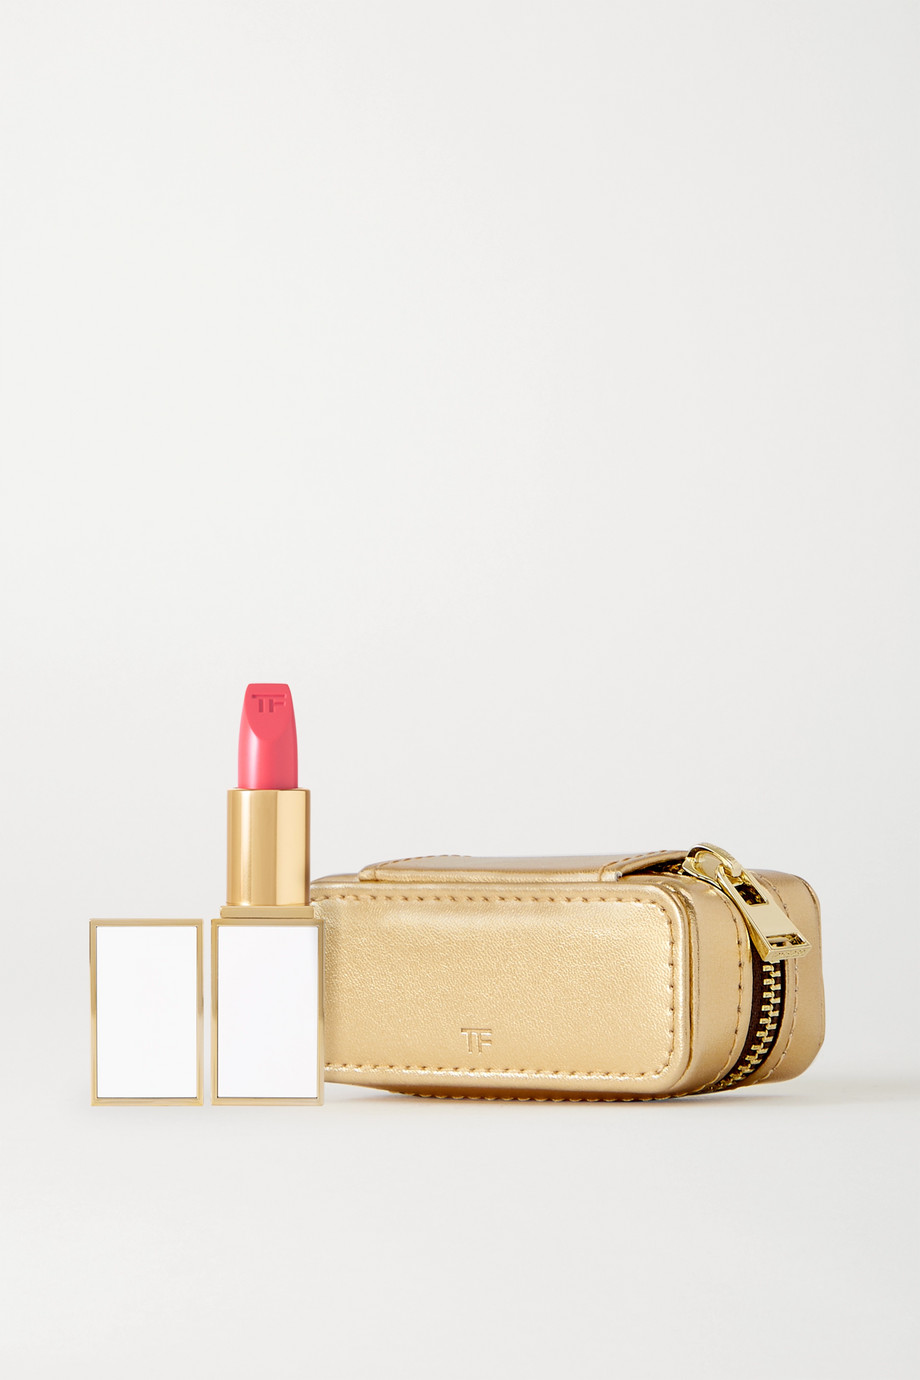 TOM FORD BEAUTY Lip Color Sheer and Metallic Leather Case Set – Paradiso – Set aus Lippenstift und Etui